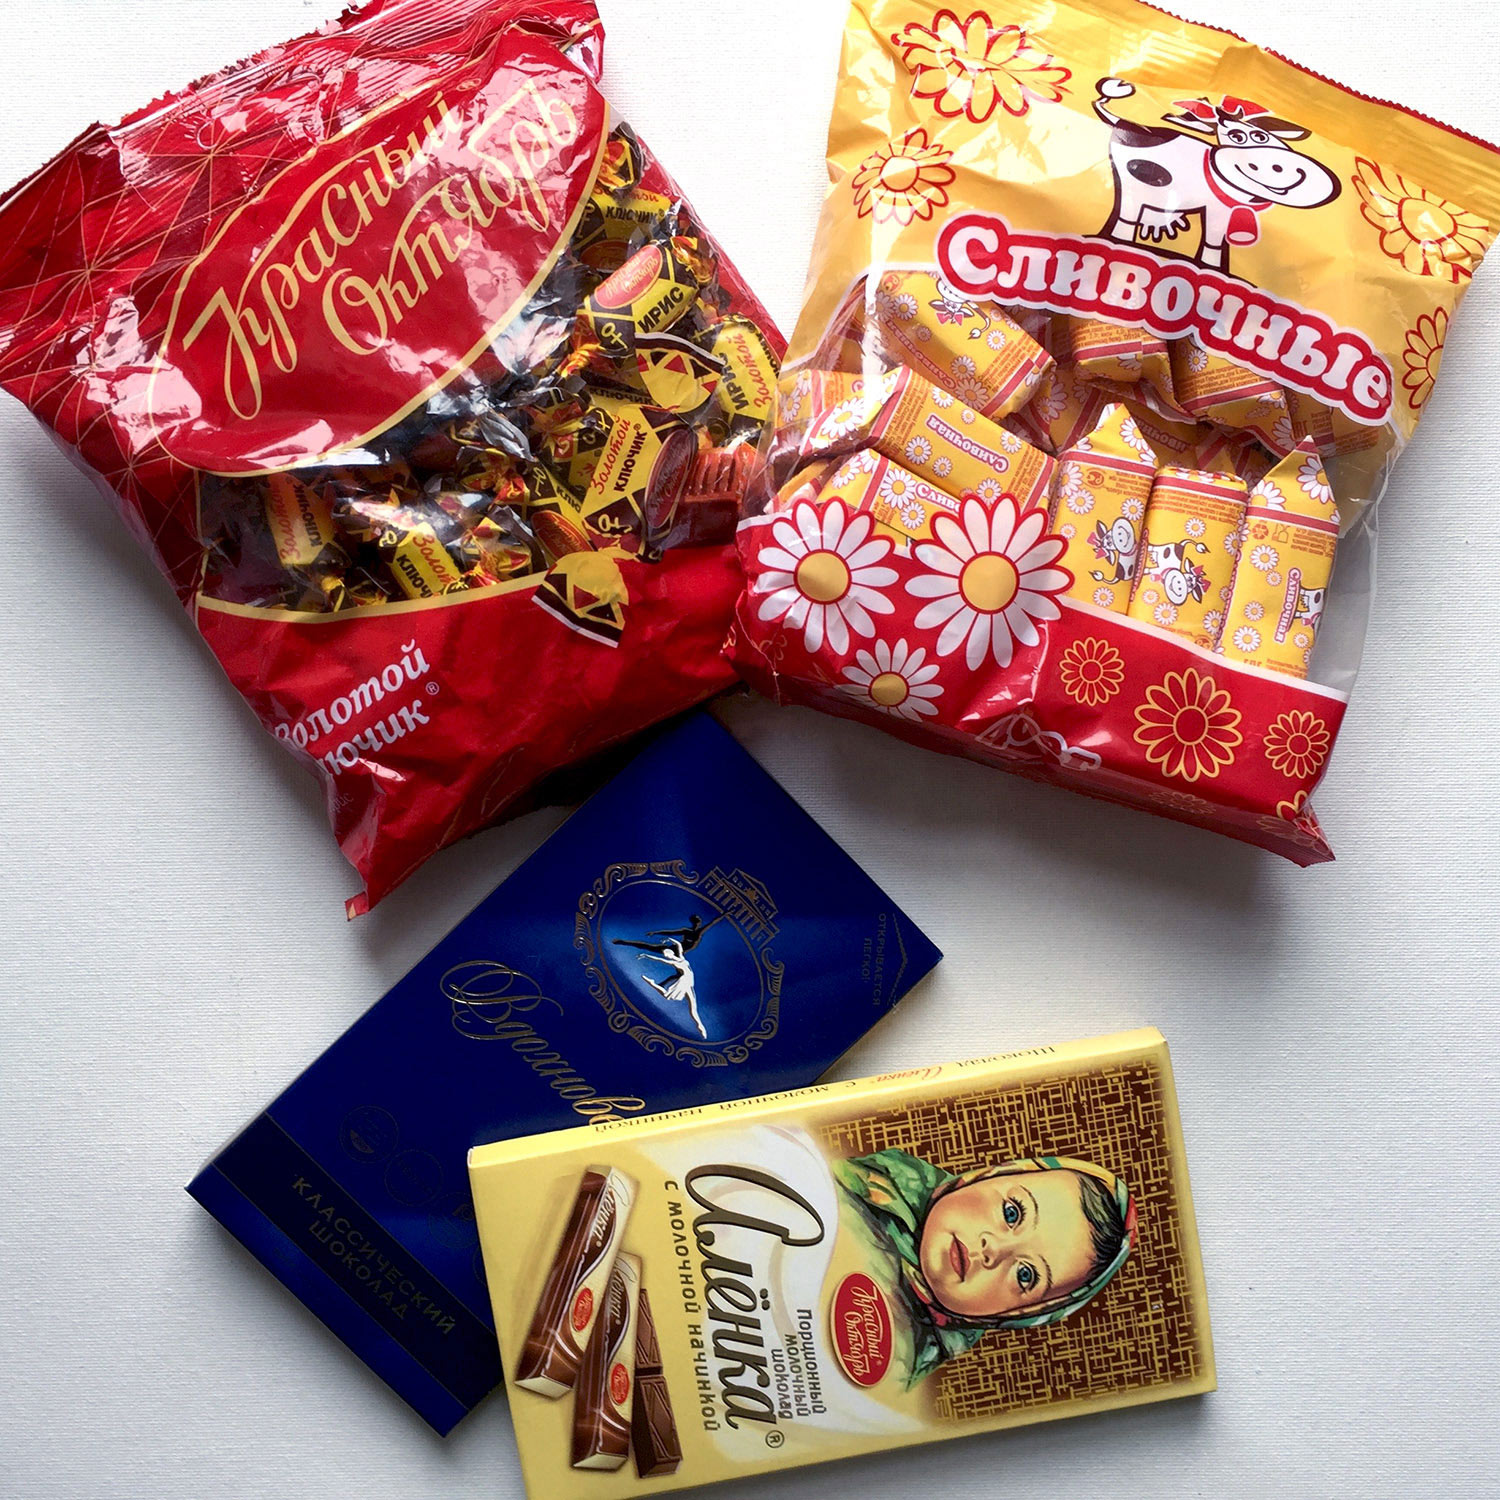 Russian-Sweets-Candy-Chocolate-Bars-1.jpg